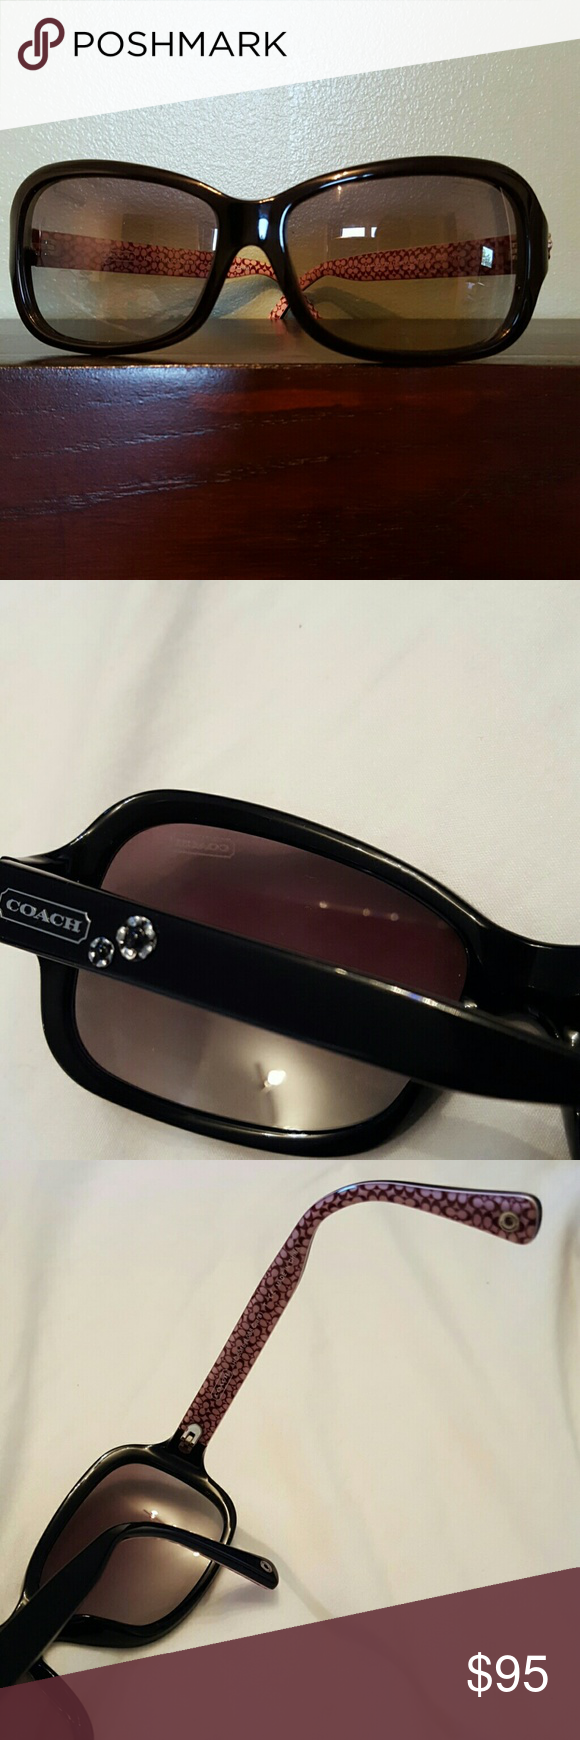 Coach Clara sunglasses Like new Coach sunglasses  Black gradient lens model HC8016 5002/11 Coach Accessories Sunglasses